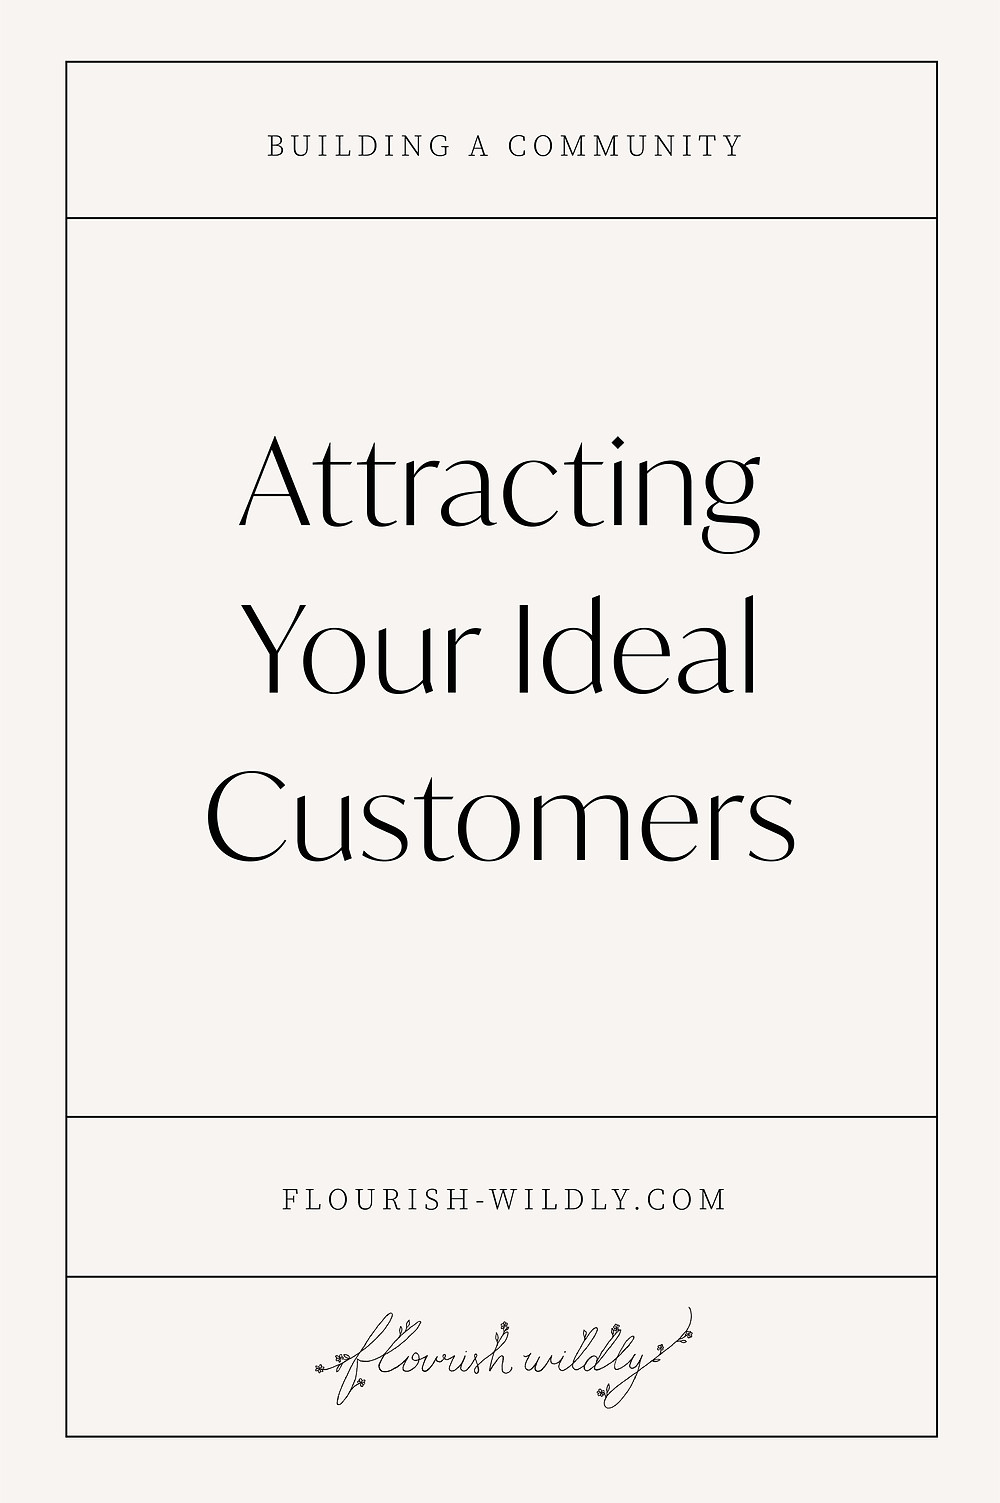 How to attract your ideal customers by building a community around your brand - Blog Post by Flourish Wildly design studio